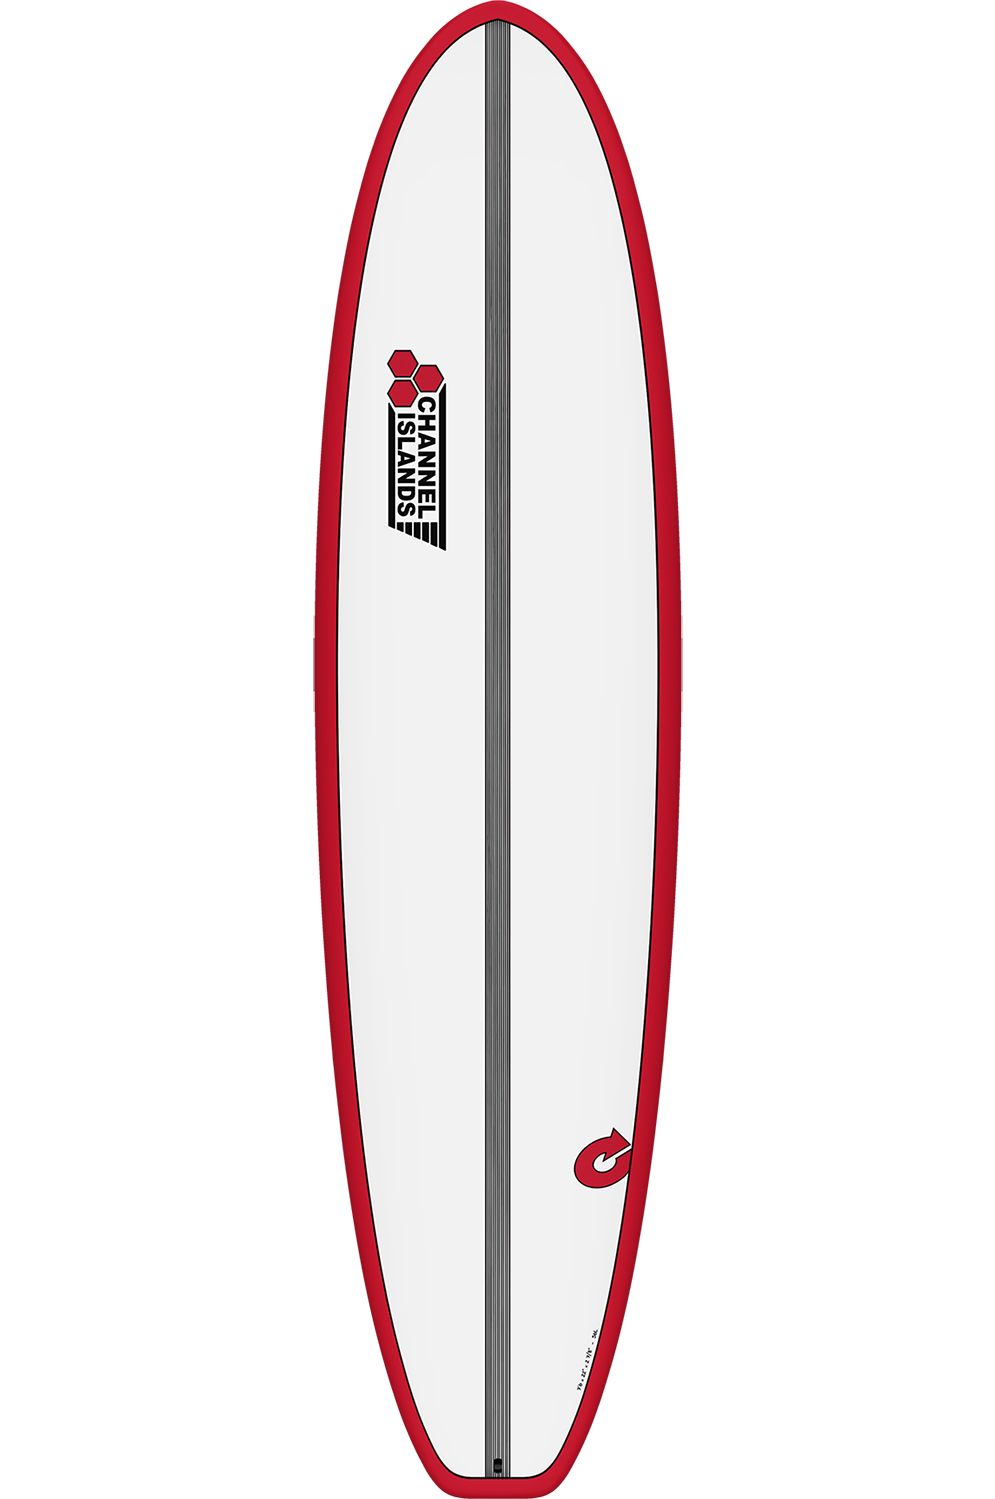 Prancha Surf Torq 7'0 CHANCHO RED + PINLINE Squash Tail - Color Futures 7ft0